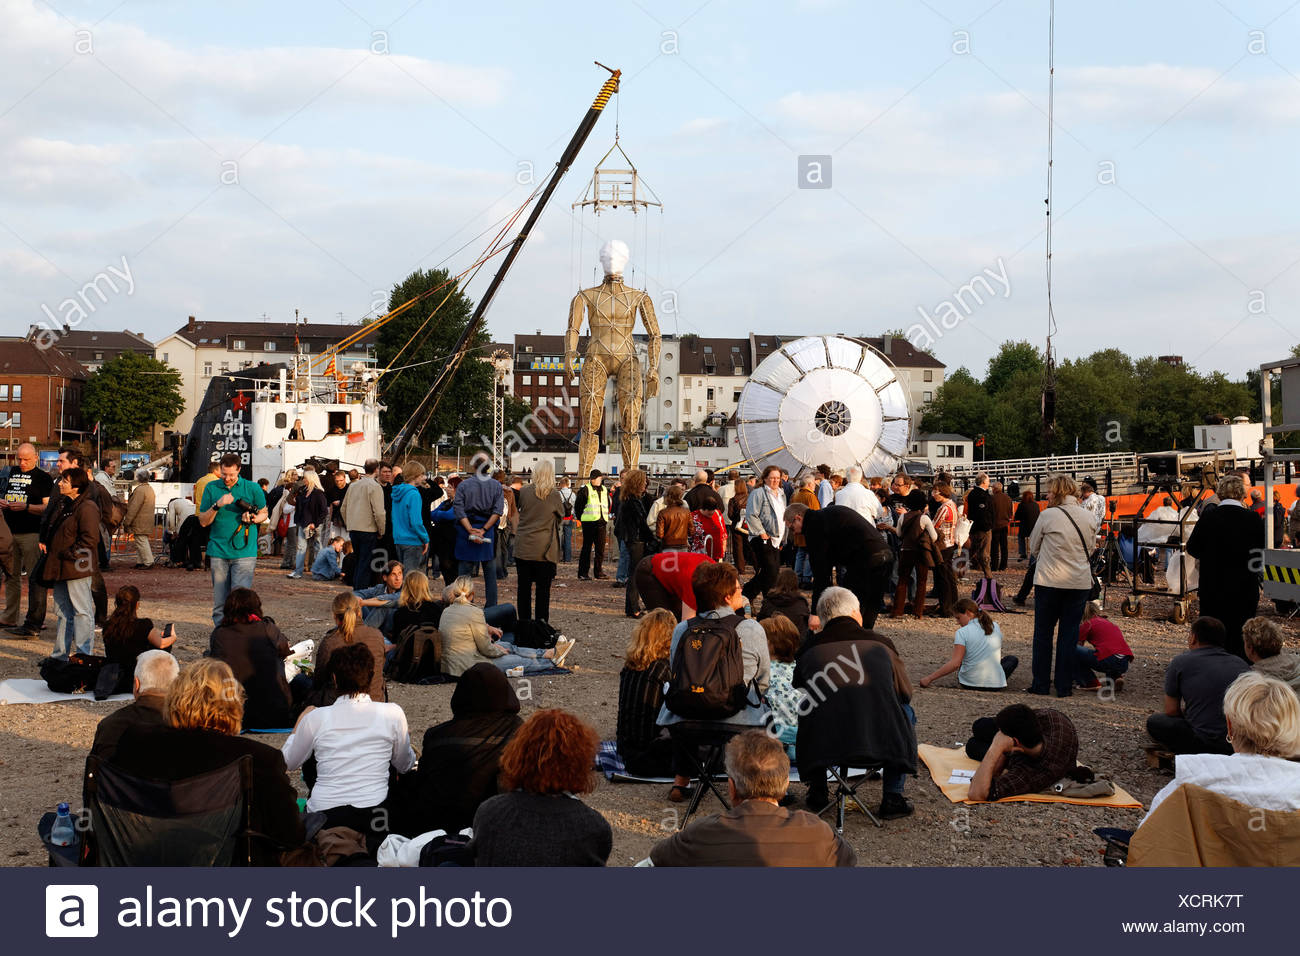 Spectators on the Mercatorinsel island waiting for Global Rheingold, open-air theater by La Fura dels Baus, Duisburg-Ruhrort - Stock Image